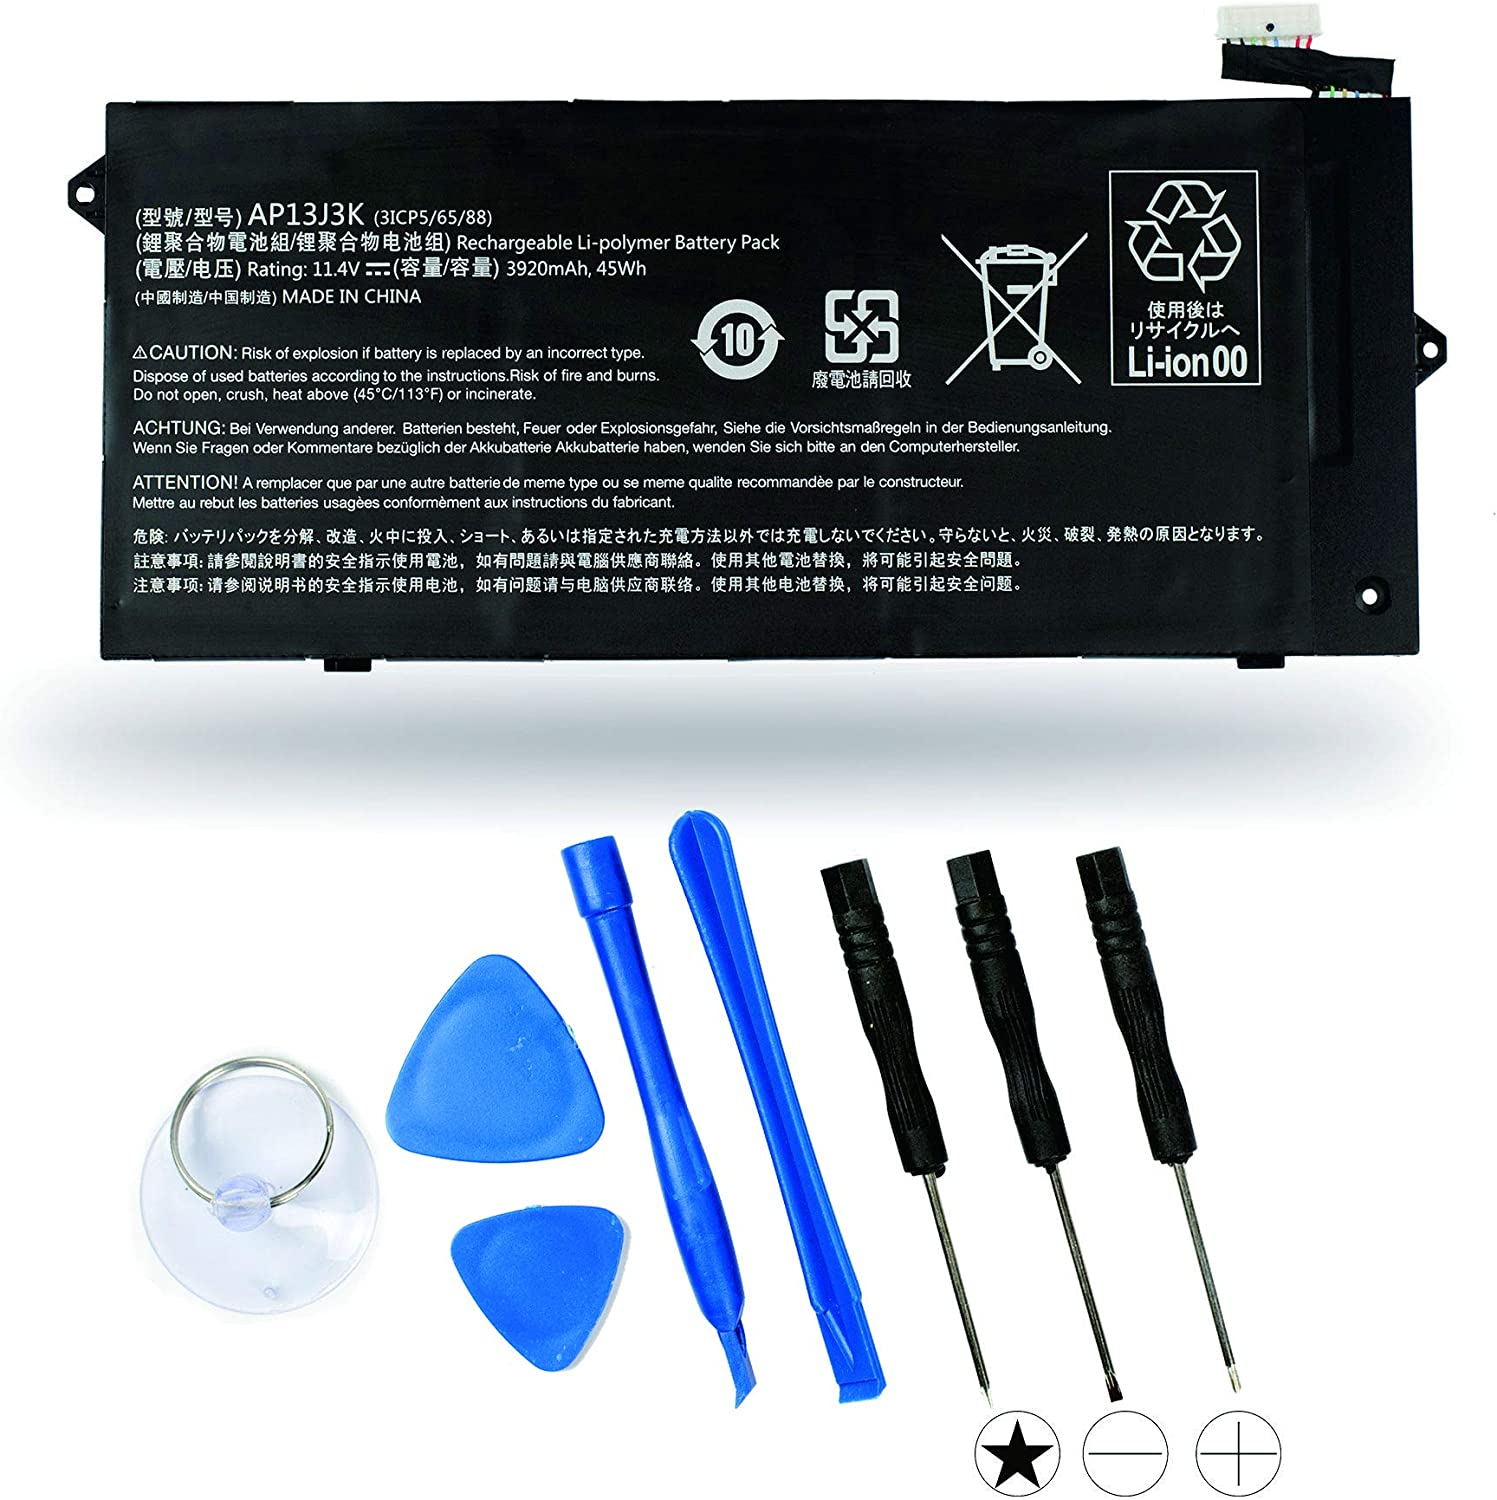 """Aluo AP13J3K Replacement Battery for Acer Chromebook 11.6"""" 11 C720-2848 C720 C720P C740 3ICP5/65/88 11.25V 45WH"""